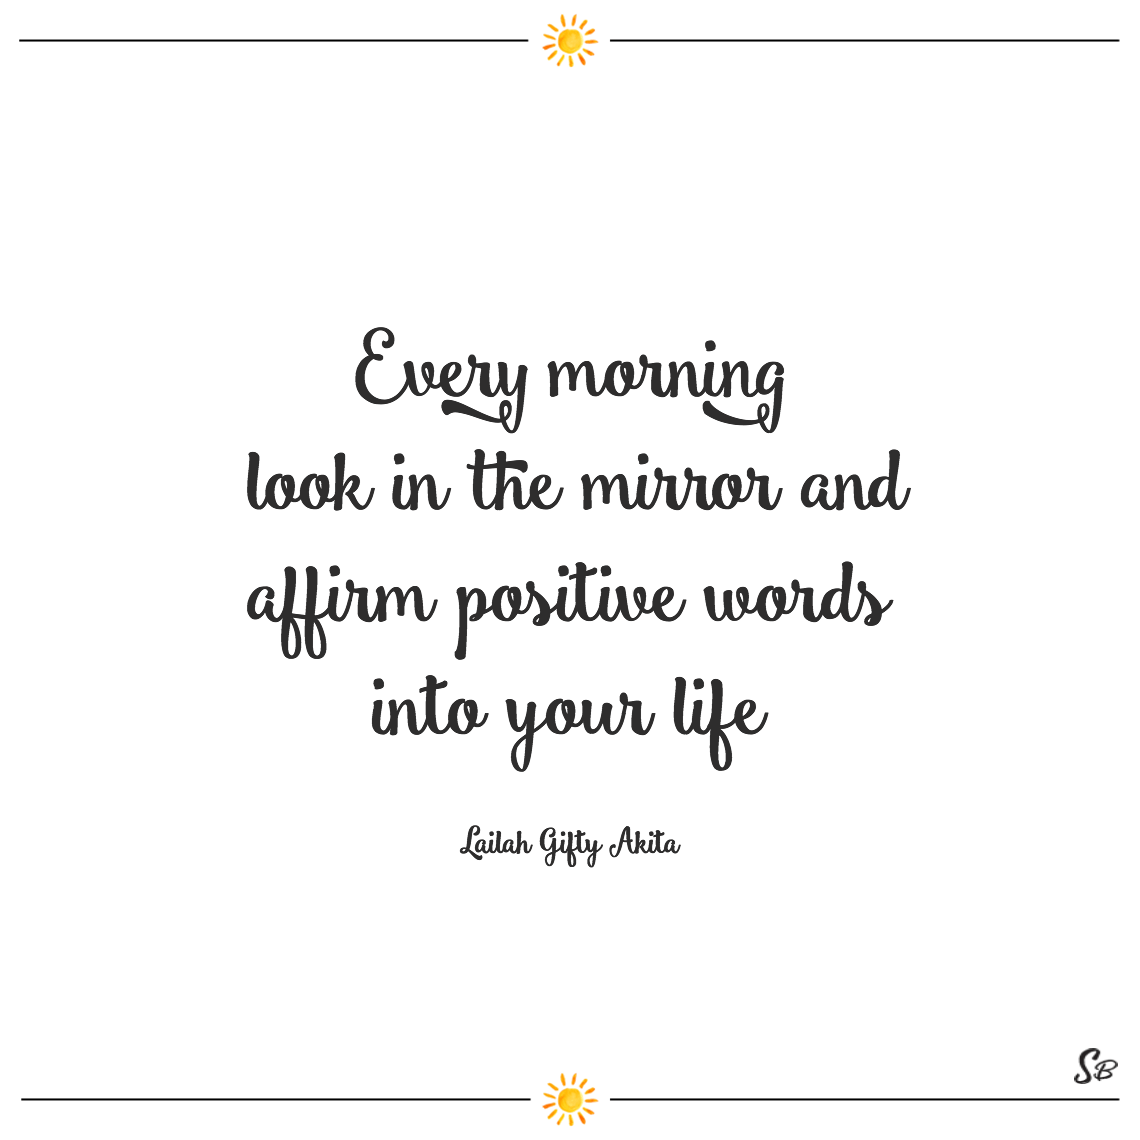 Good Quotes About Life 40 Awesome Good Morning Quotes To Jump Start Your Day  Spirit Button